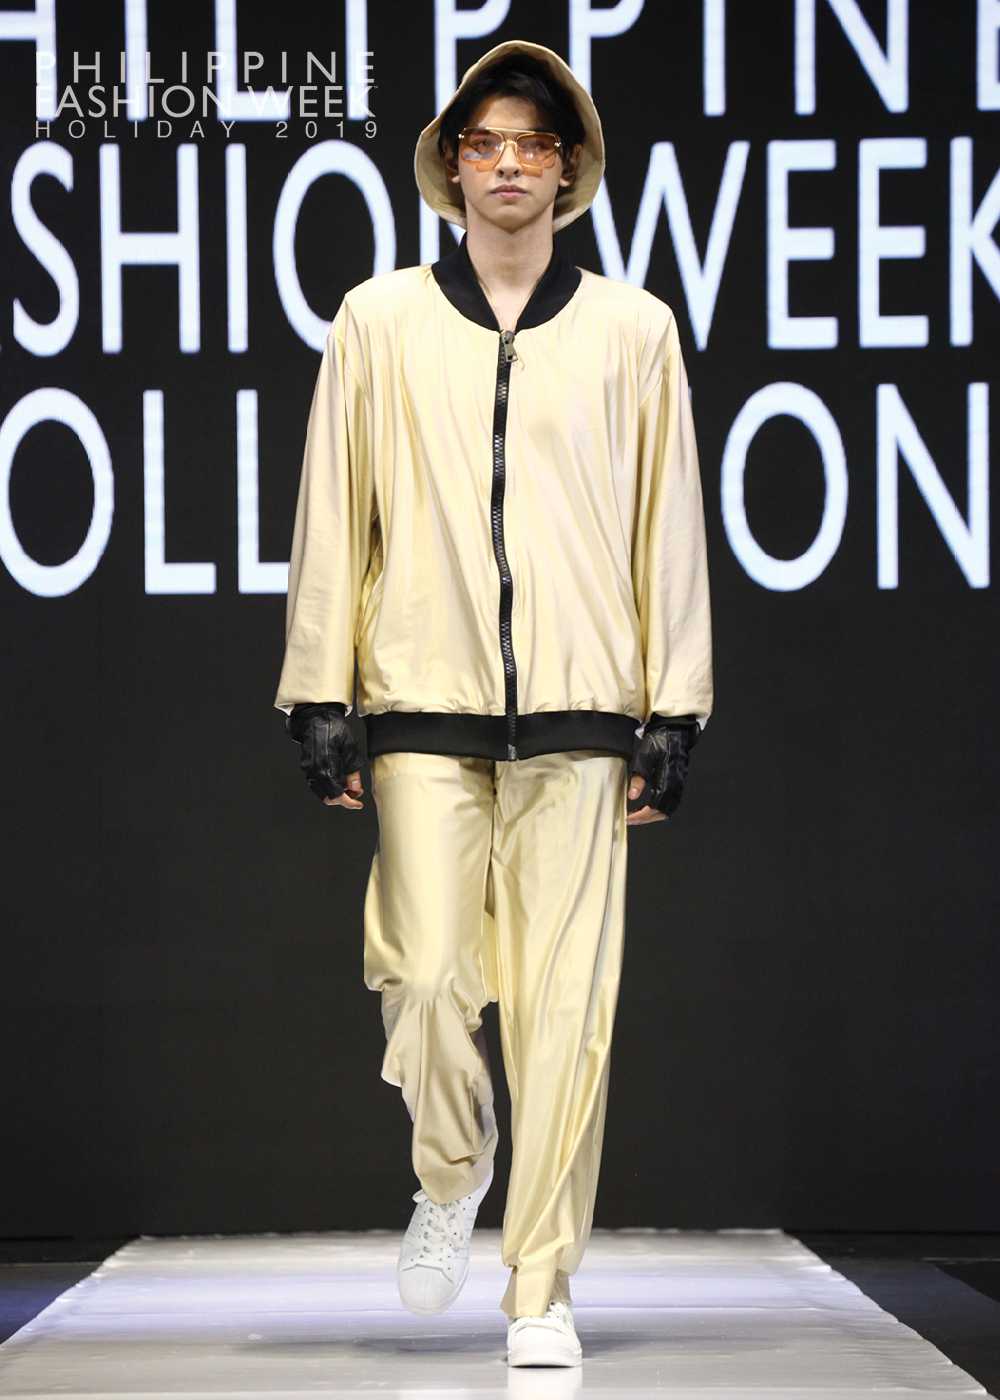 PhFW_collection show4.jpg